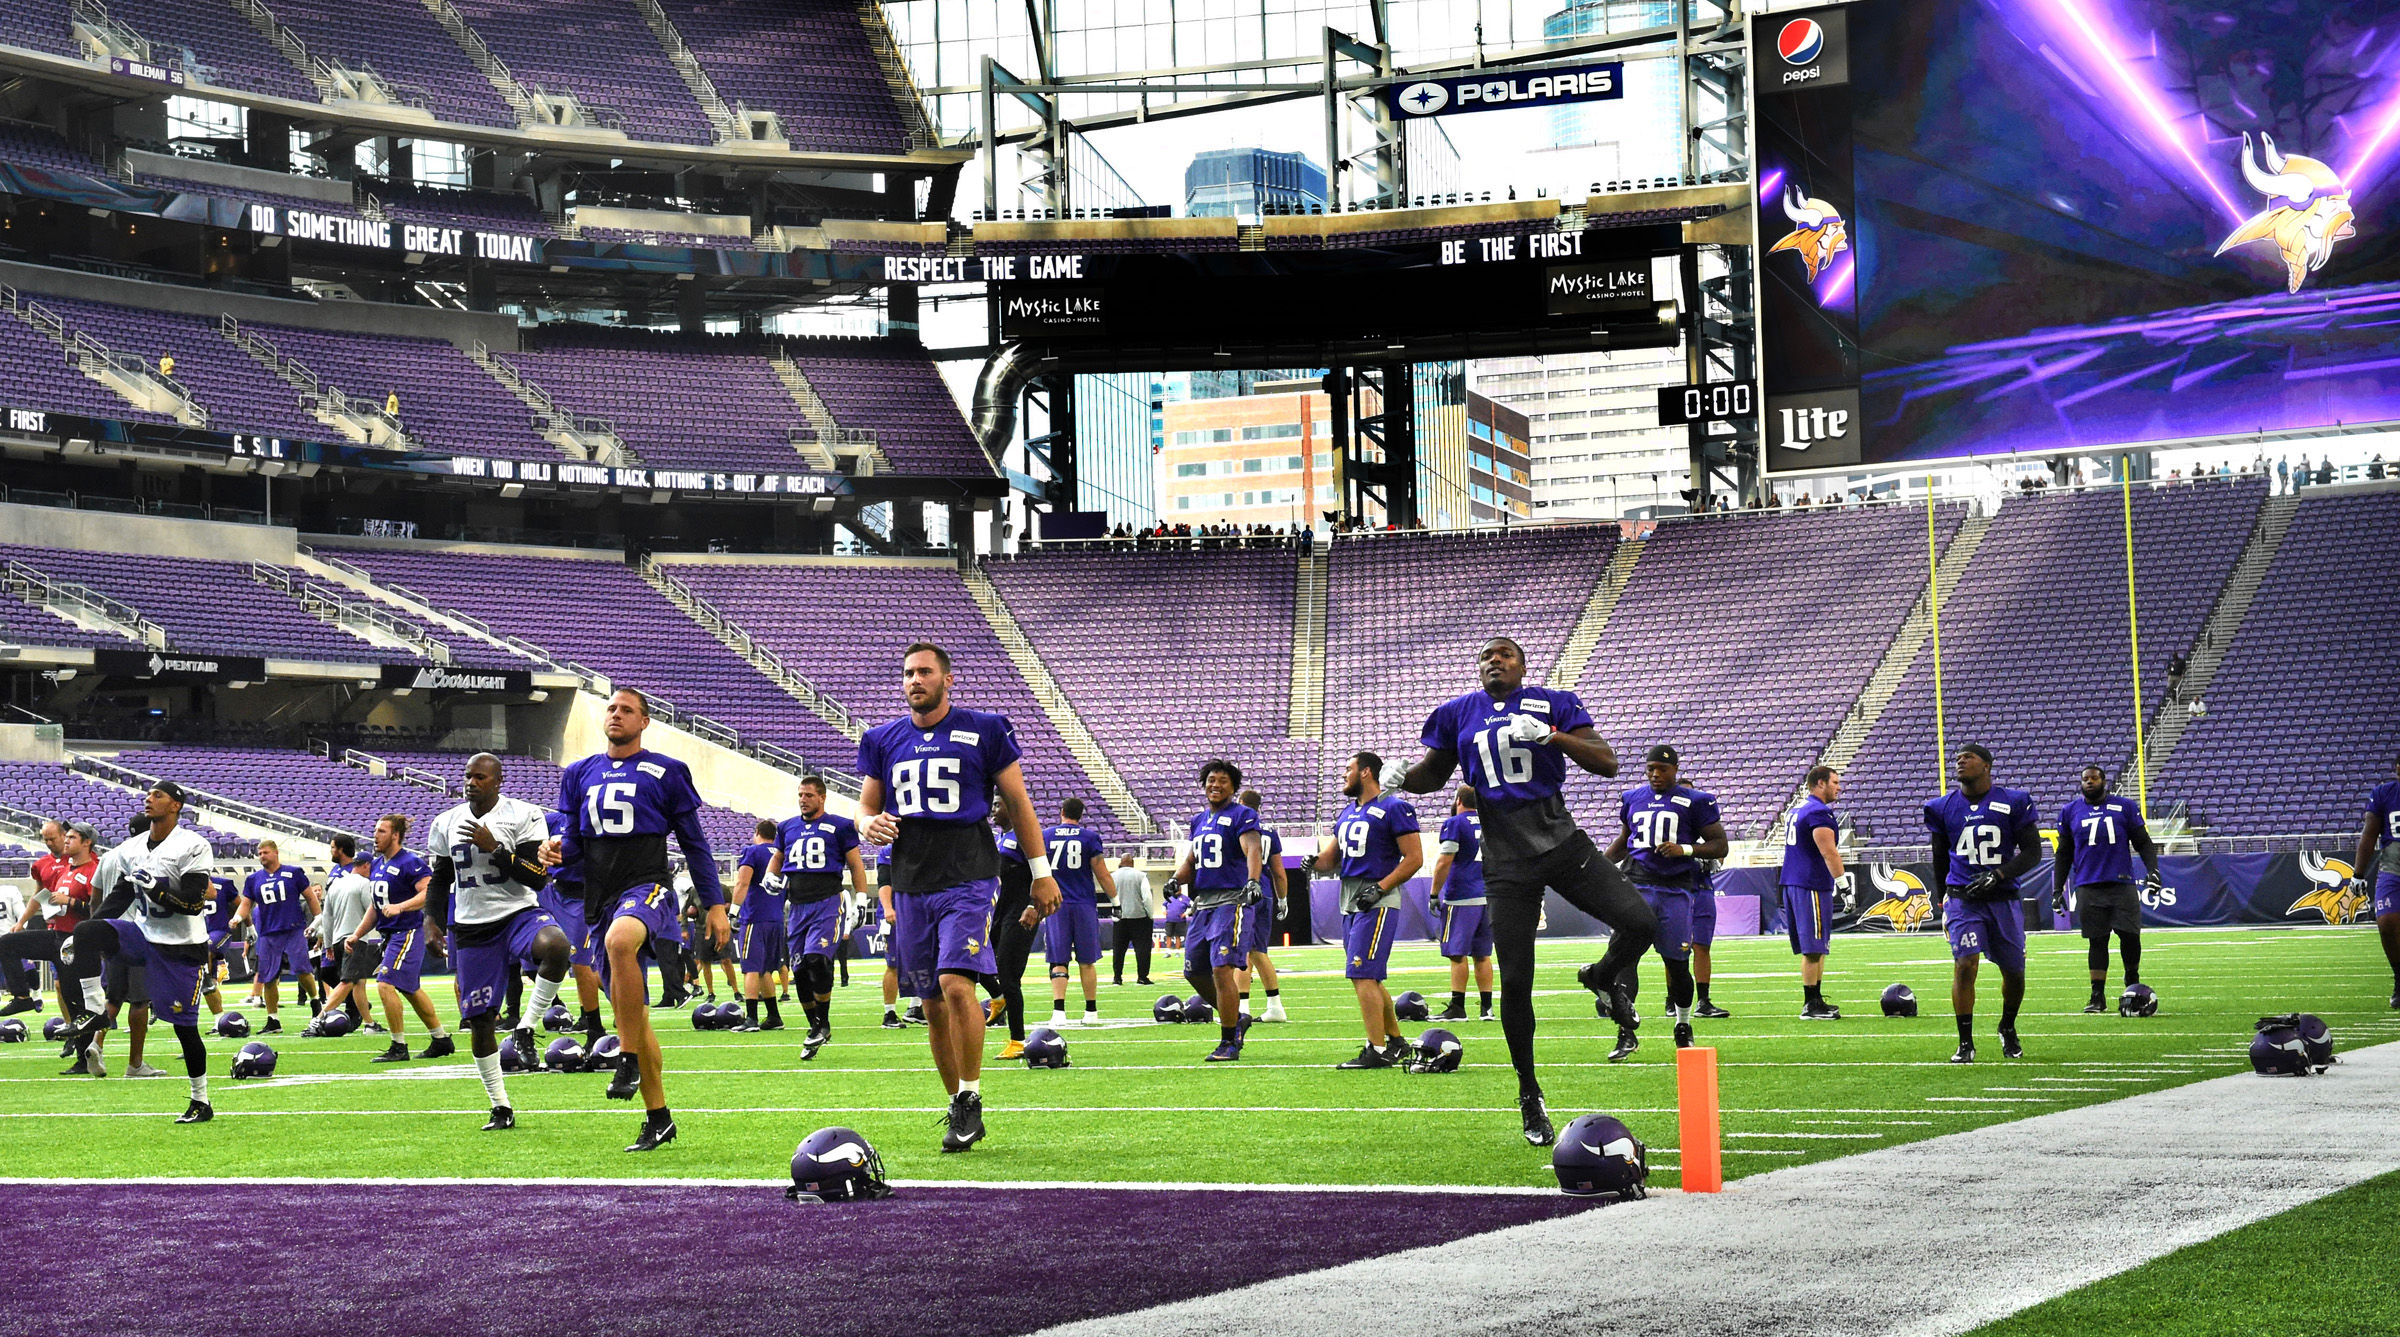 Minnesota Vikings players stretch before their first NFL football practice at U.S. Bank Stadium in Minneapolis, Friday, Aug. 26, 2016. The Vikings will face the San Diego Chargers in a preseason game Sunday, the first for the team at their new stadium. (P